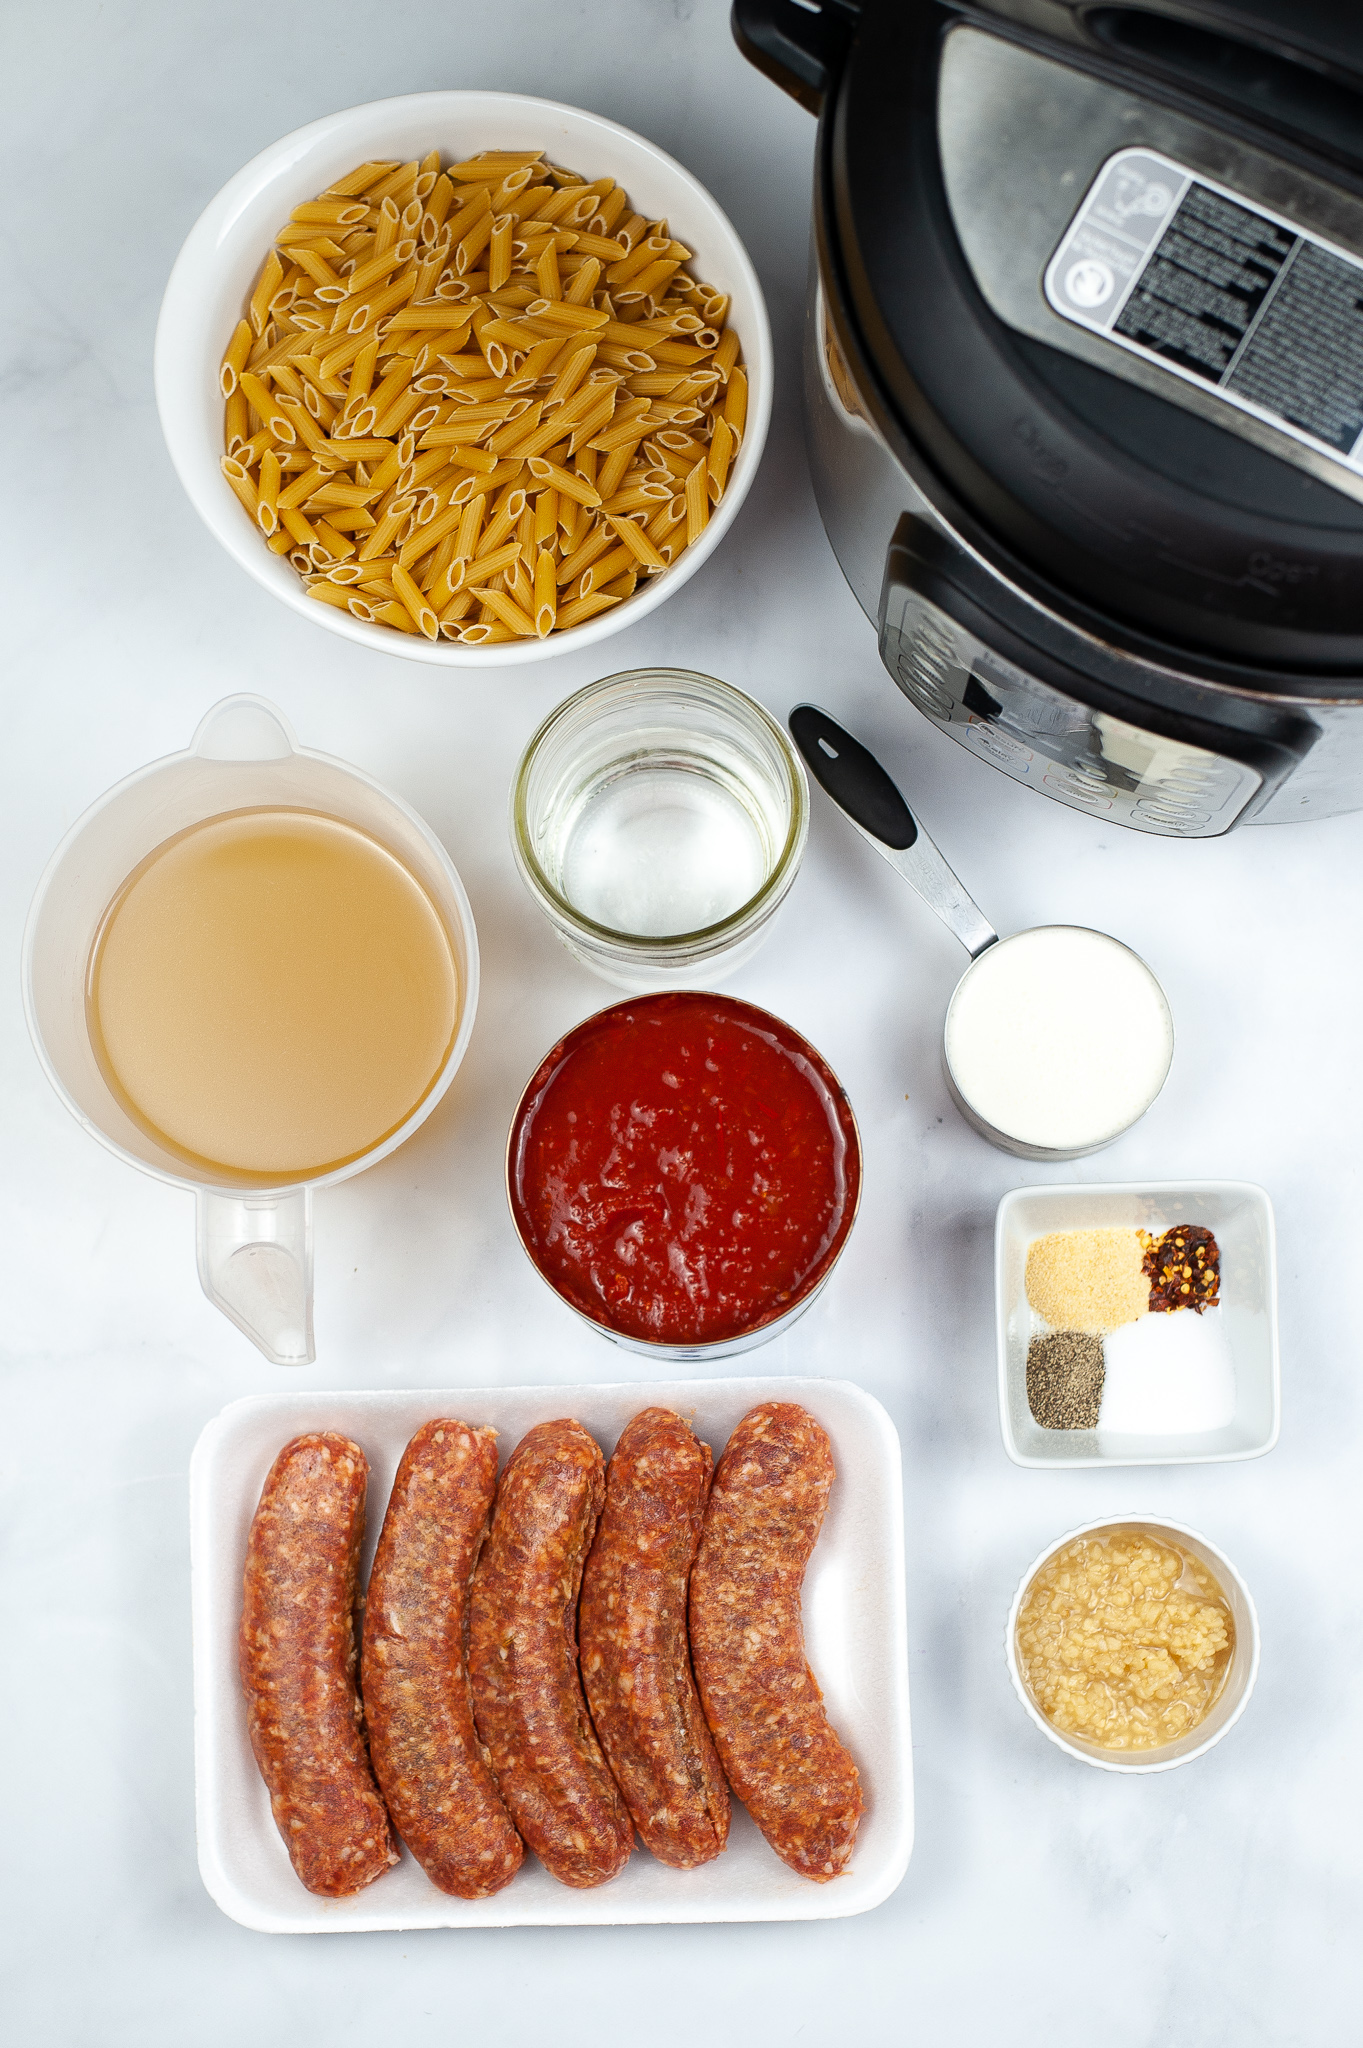 Sausage, sauce, chicken stock and all the ingredients need to make Penne Vodka Sauce.